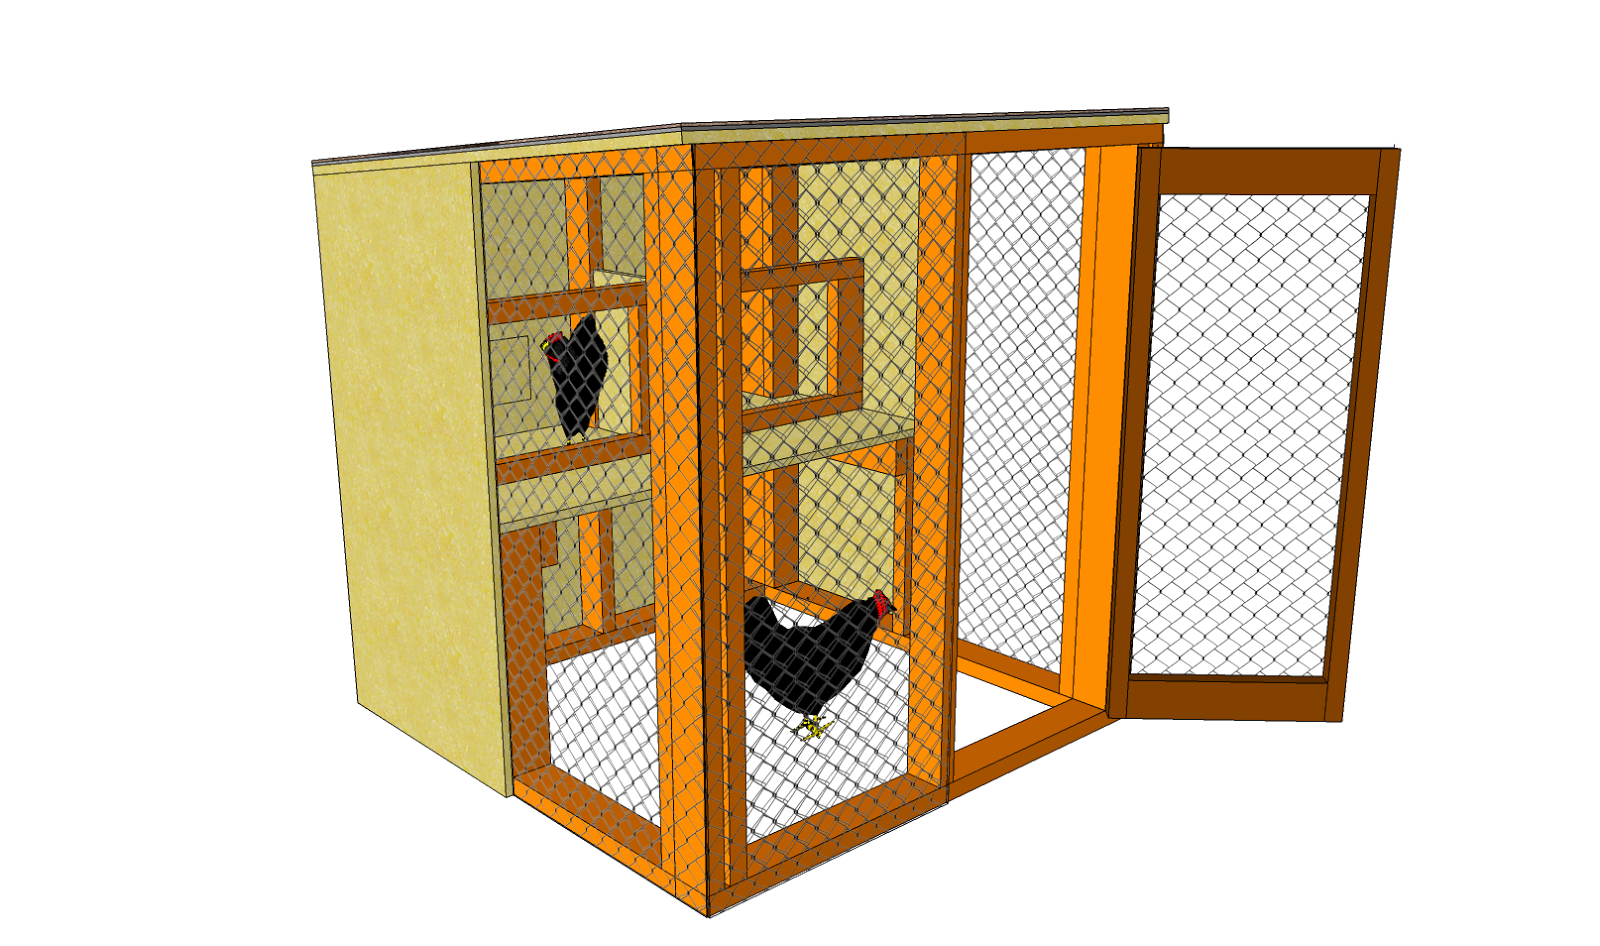 Building chicken coops chicken coop plans free download for Plans chicken coop